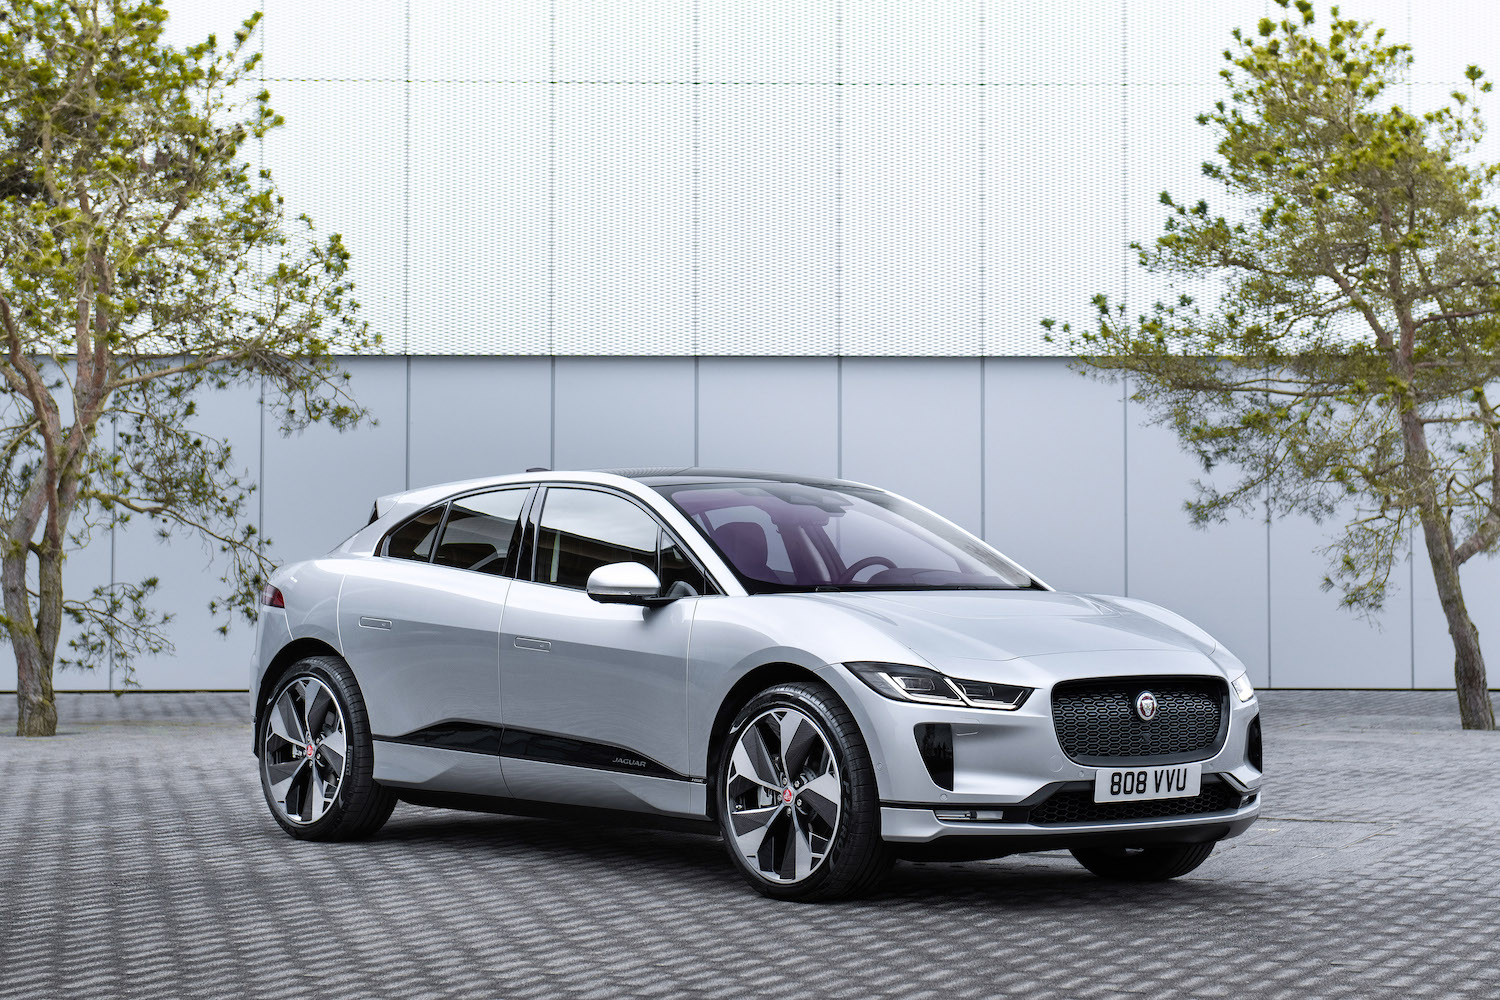 Car News | Jaguar I-Pace picks up high-tech taxi fare | CompleteCar.ie